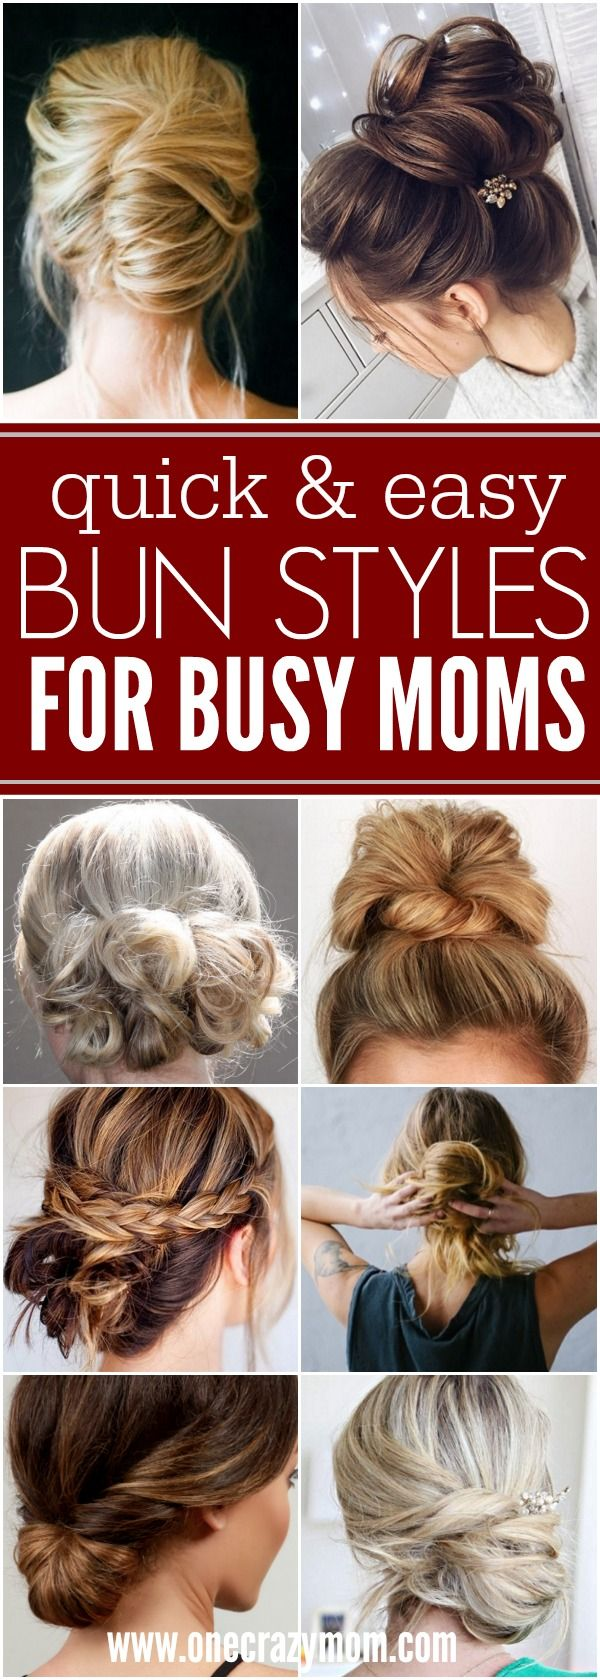 Easy Bun Hairstyles Pleasing Cute Bun Hairstyles  Messy Bun Hairstyles For Moms  Easy Bun Bun